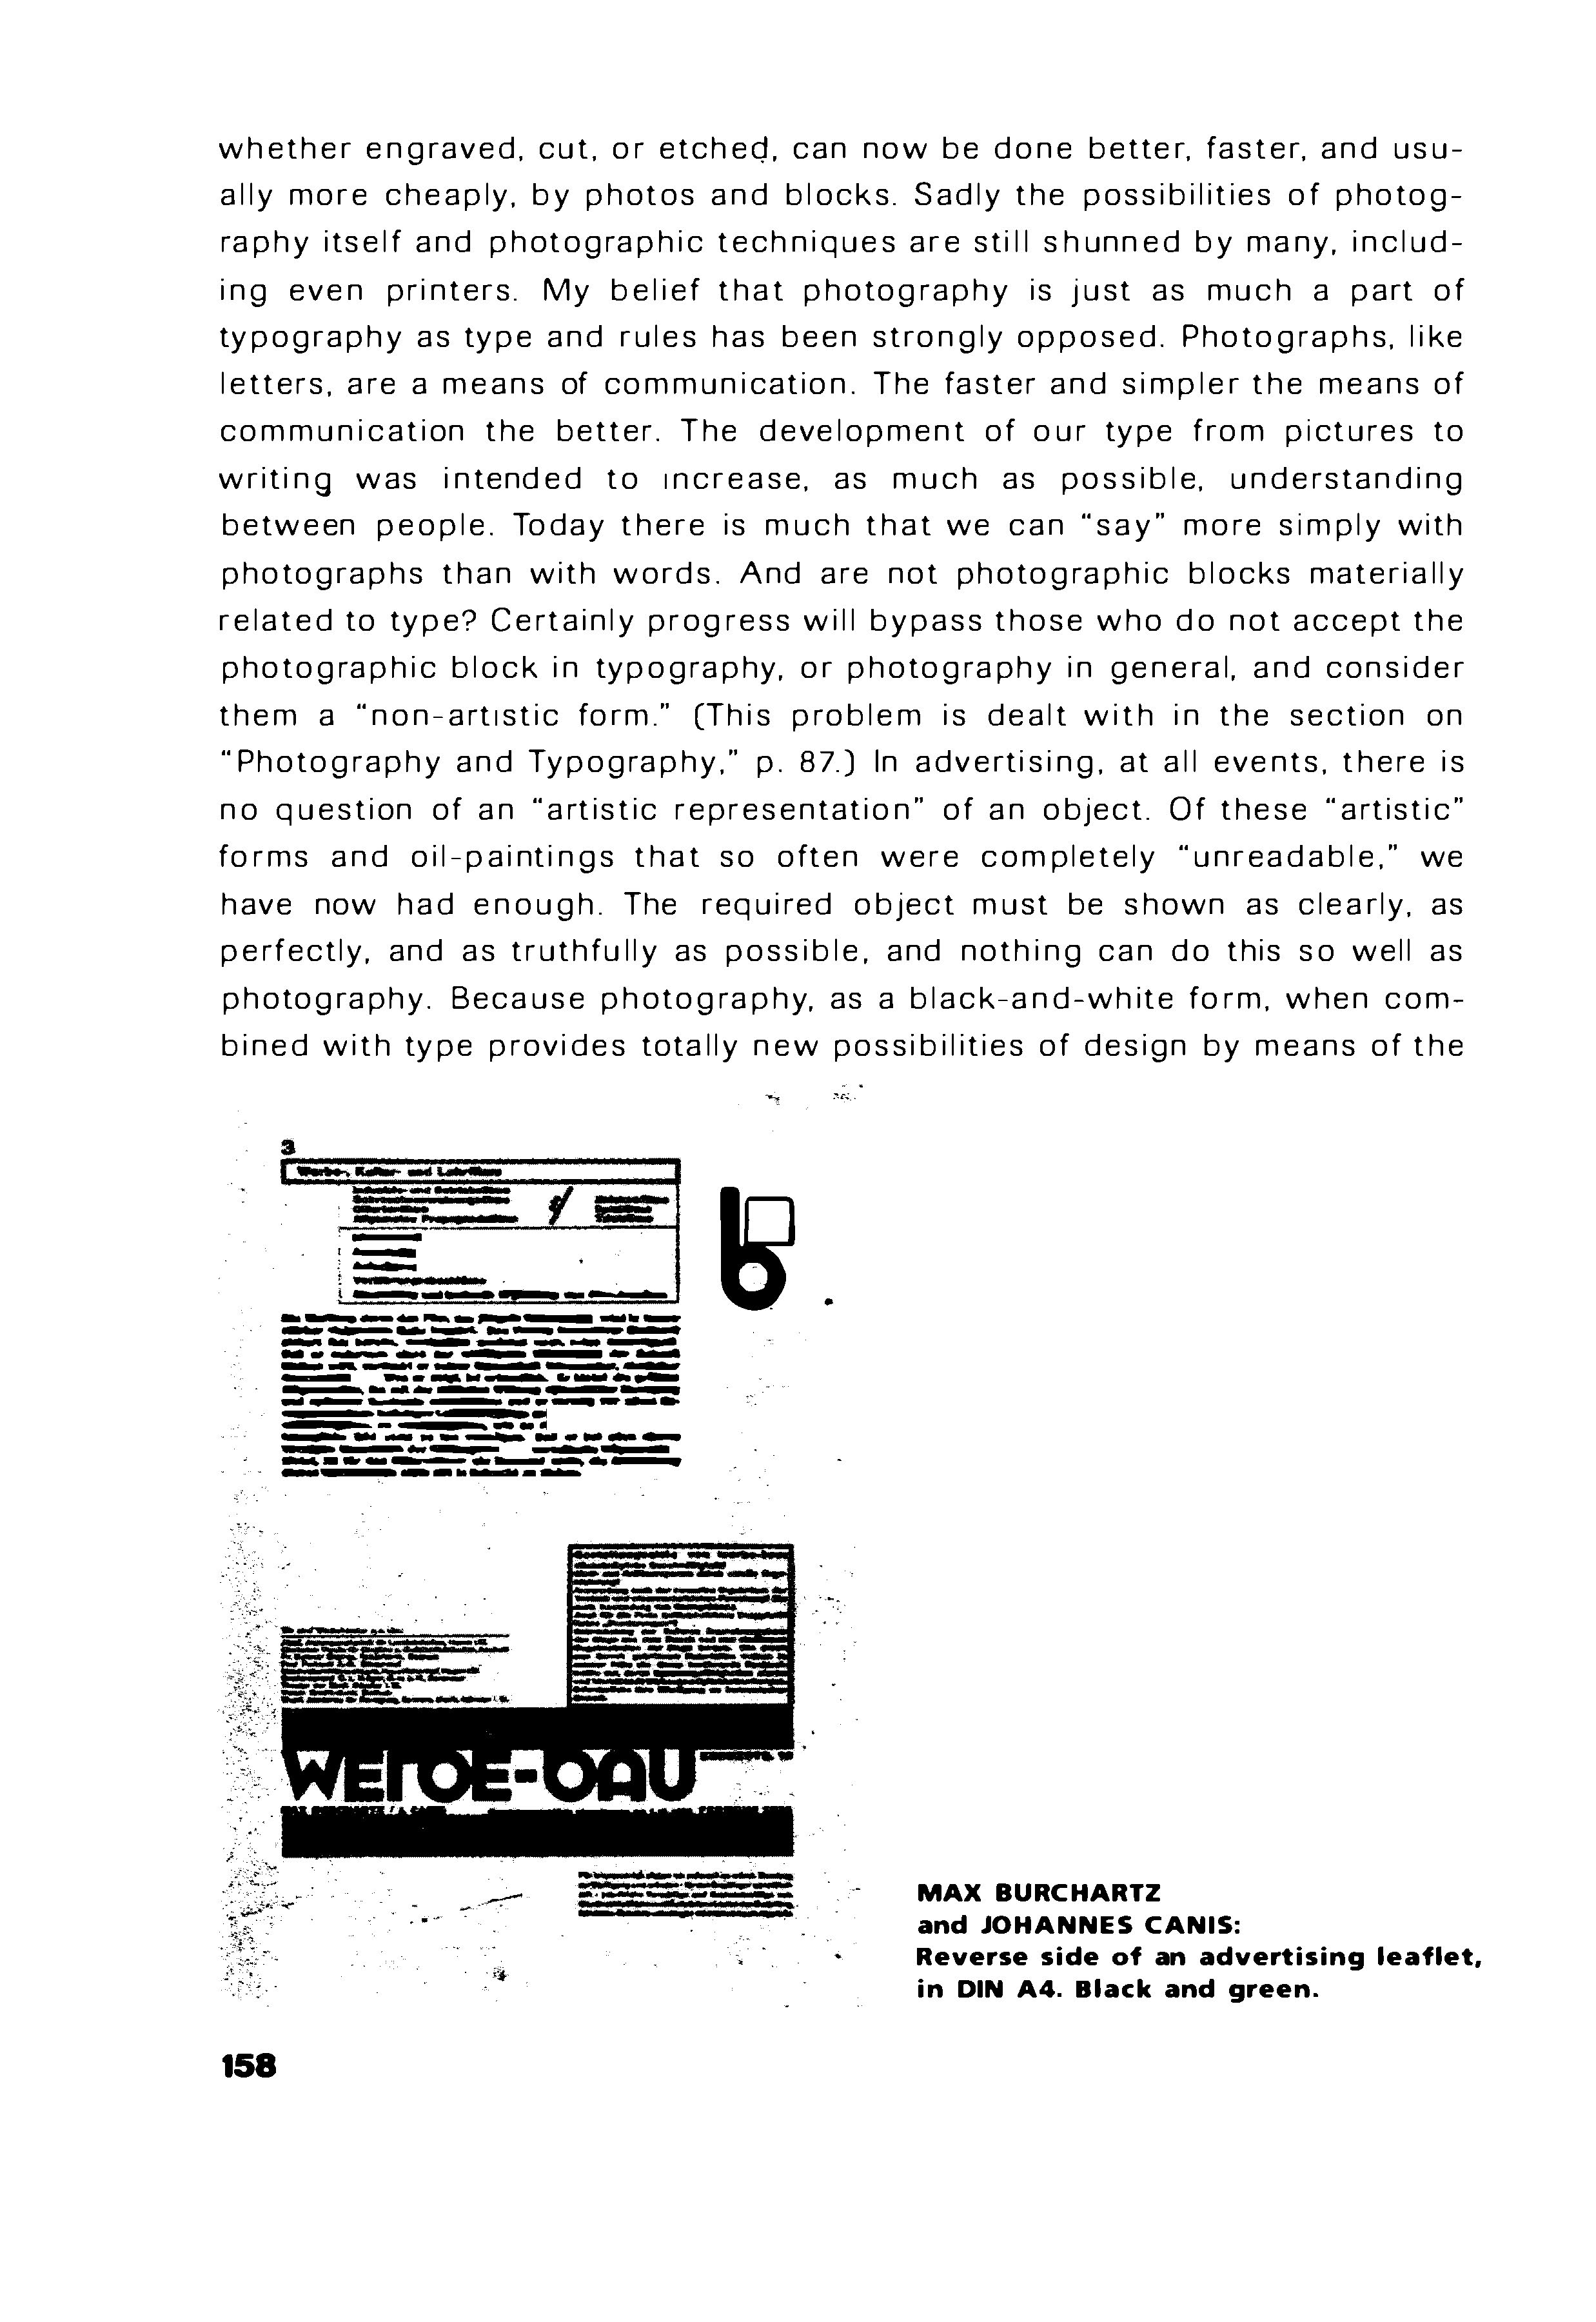 jan-tschichold-the-new-typography-1928_page_202